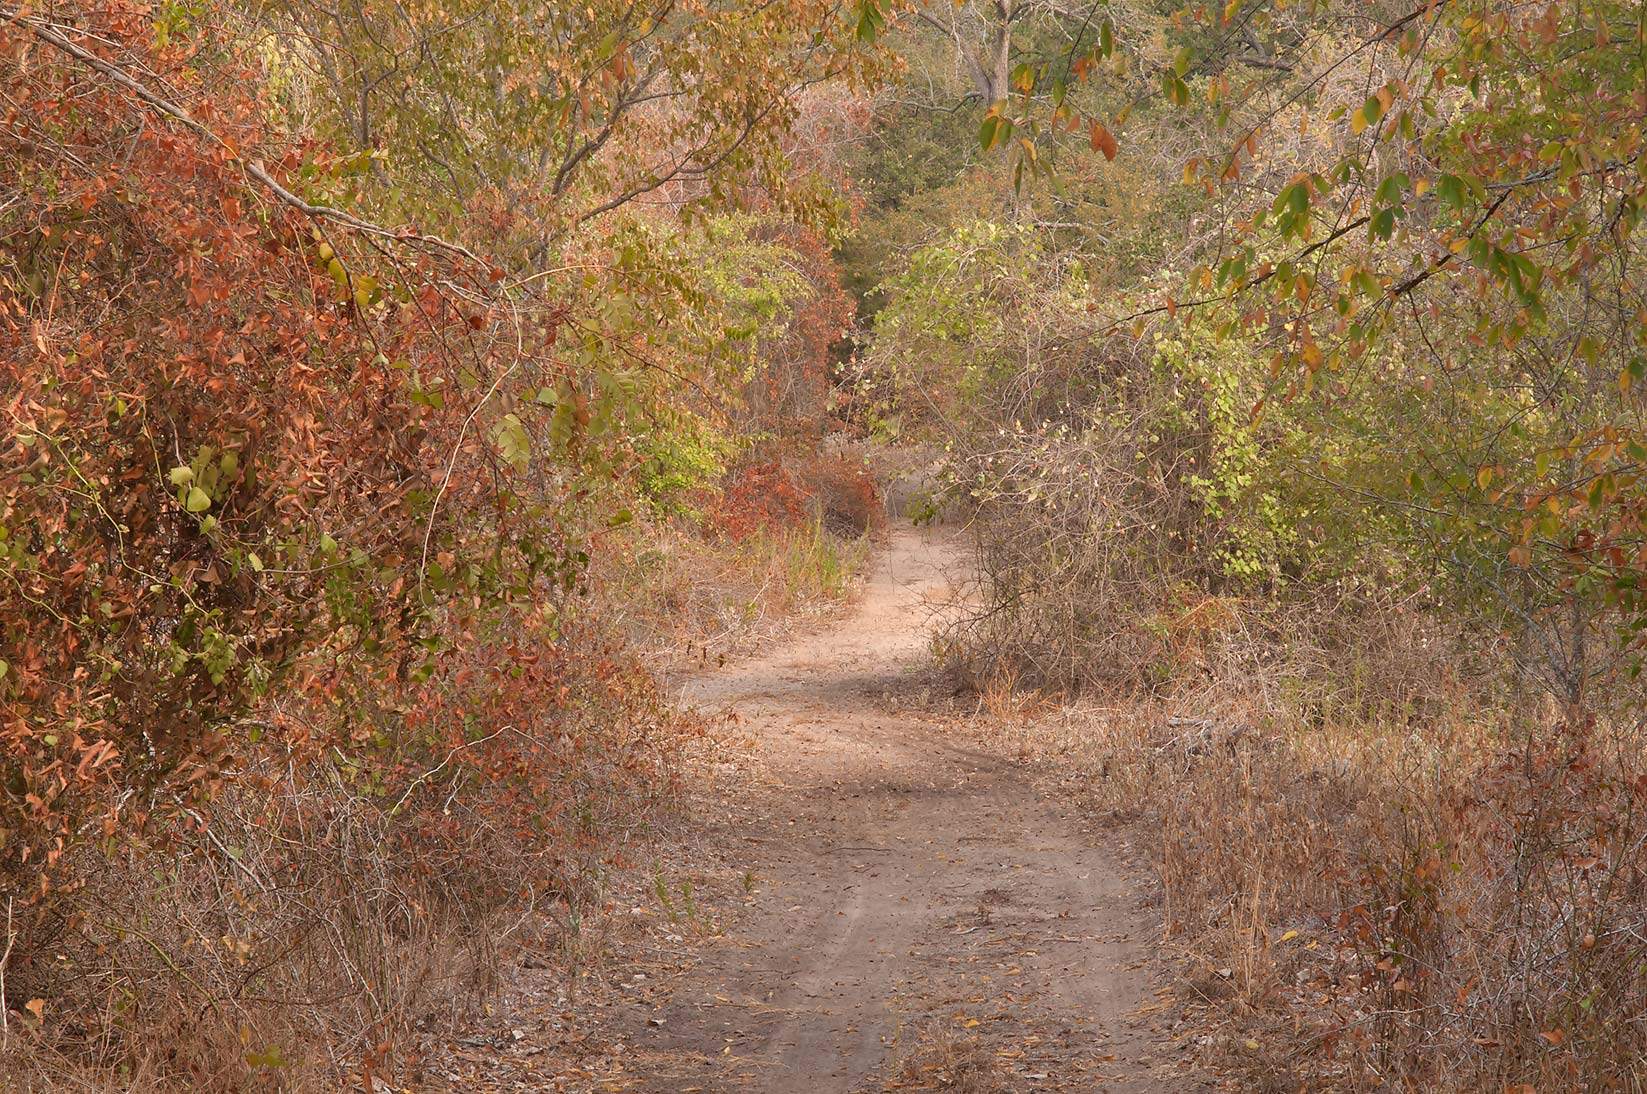 A trail through brown vegetation in Birch Creek Park near Somerville Lake. Texas